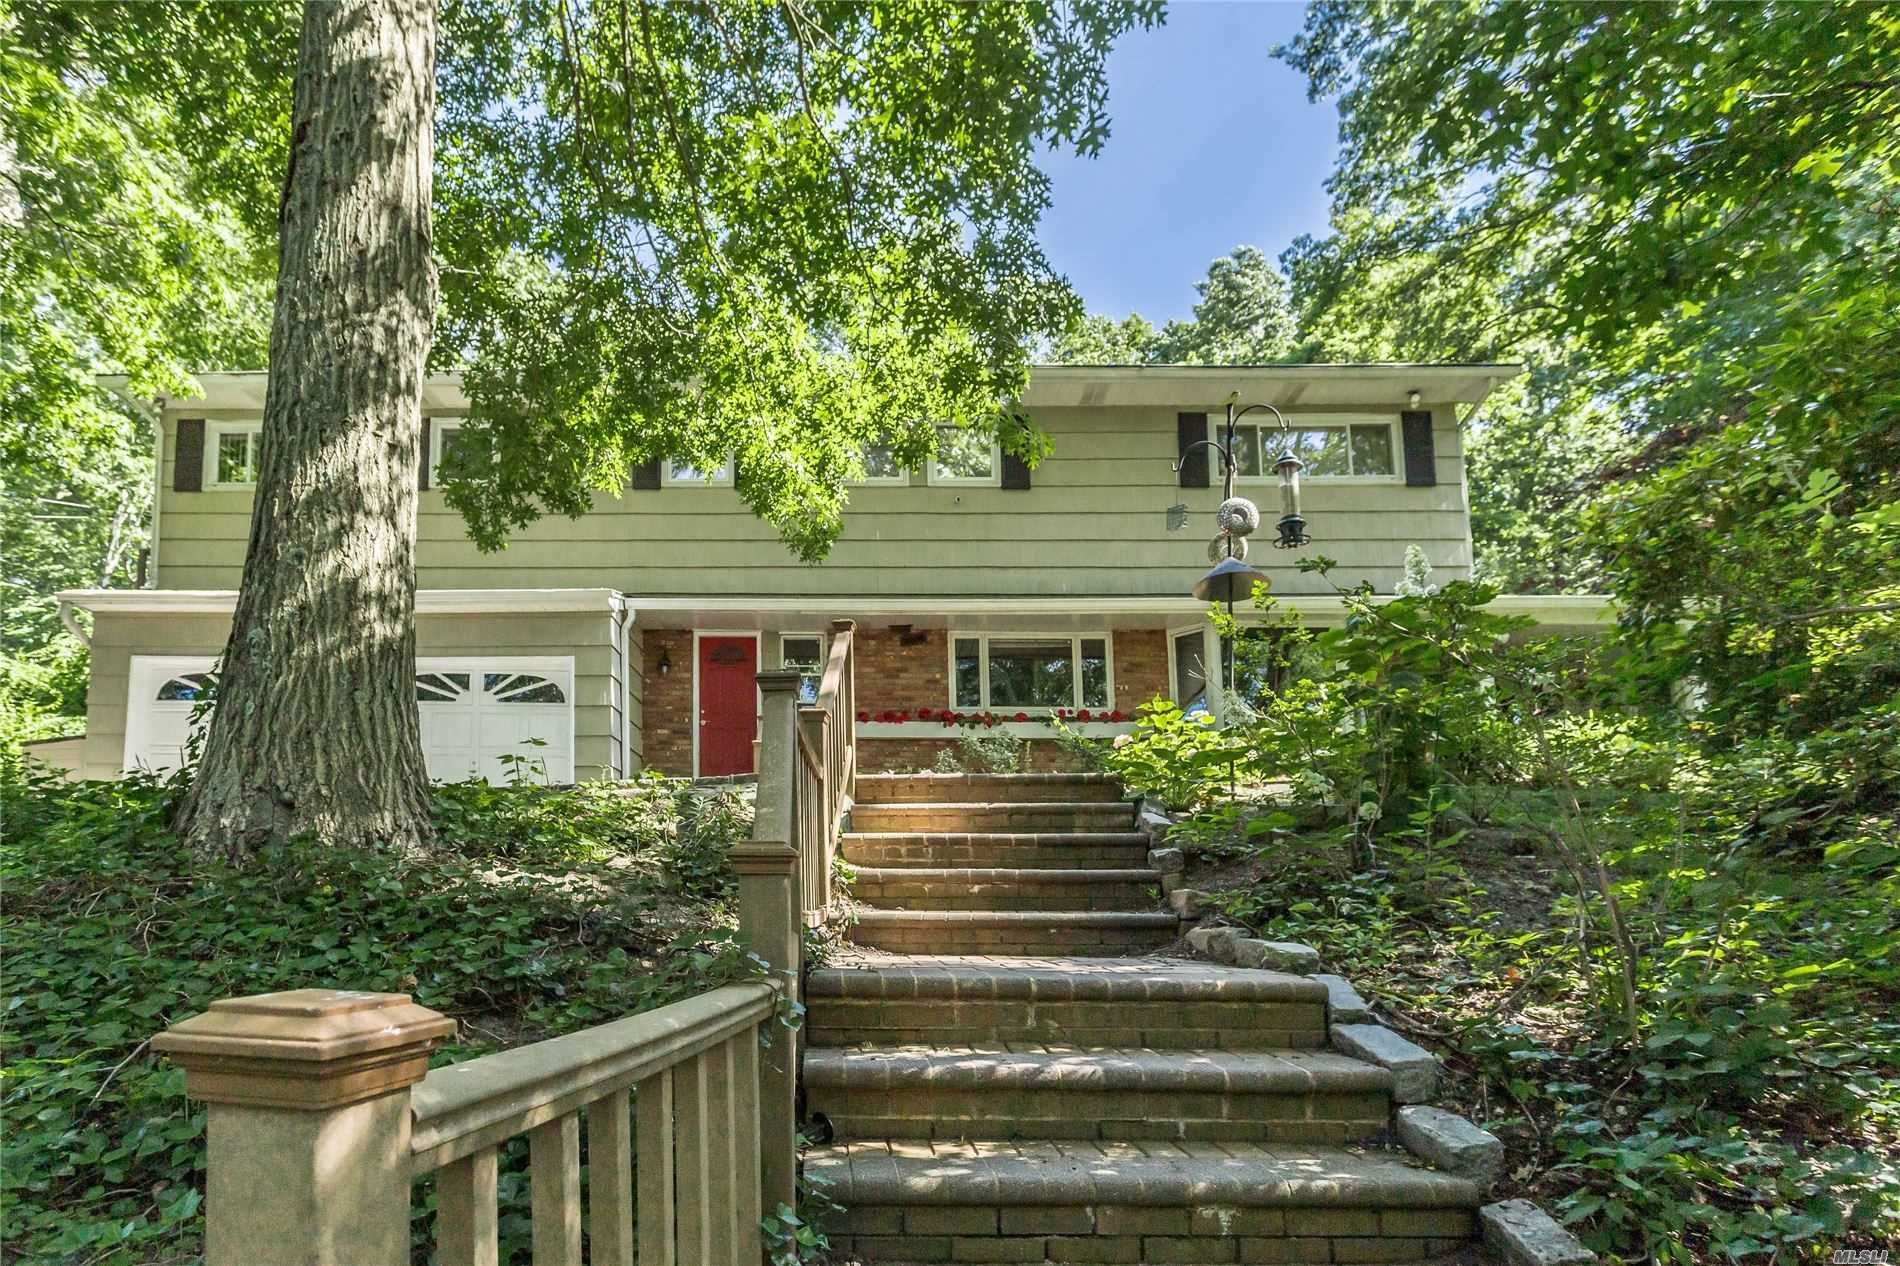 96 Old Country Road, Melville, NY 11747 - MLS#: 3206694